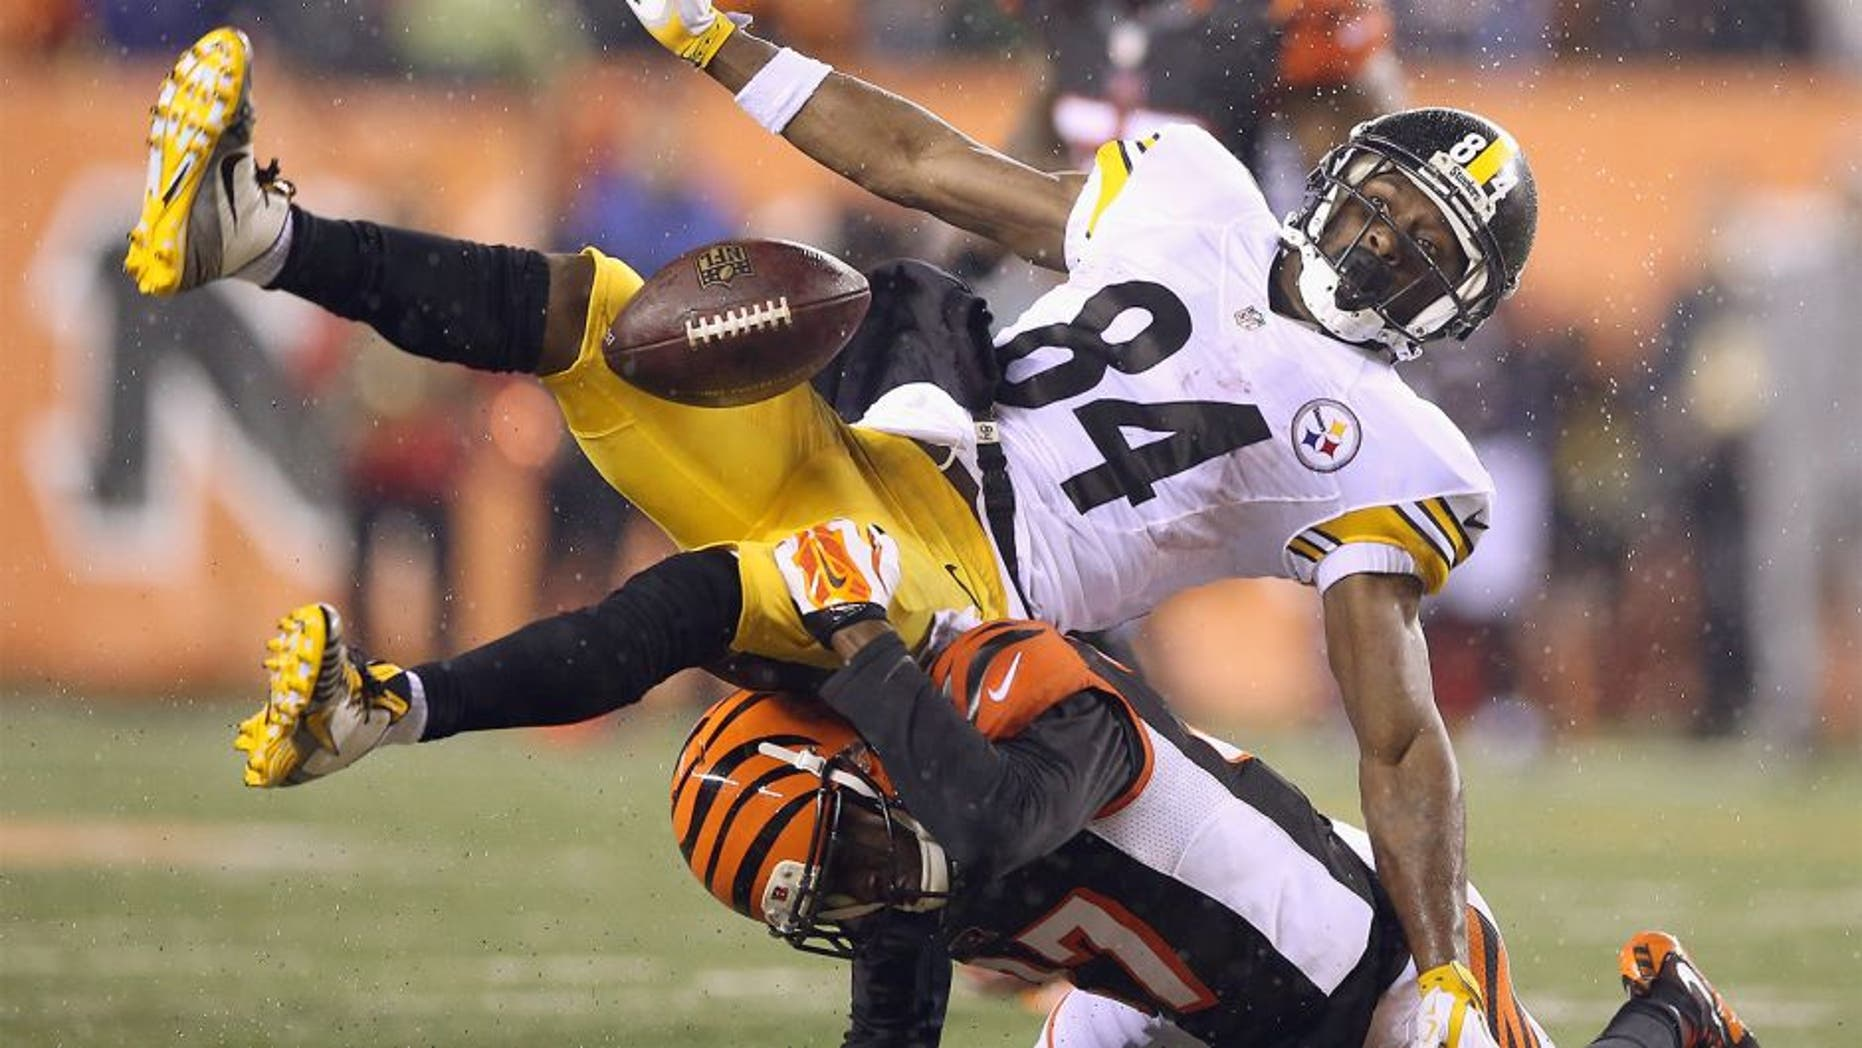 CINCINNATI, OH - JANUARY 09: Antonio Brown #84 of the Pittsburgh Steelers is unable to catch a pass as he is defended by Chris Lewis-Harris #37 of the Cincinnati Bengals in the fourth quarter during the AFC Wild Card Playoff game at Paul Brown Stadium on January 9, 2016 in Cincinnati, Ohio. (Photo by Andy Lyons/Getty Images)